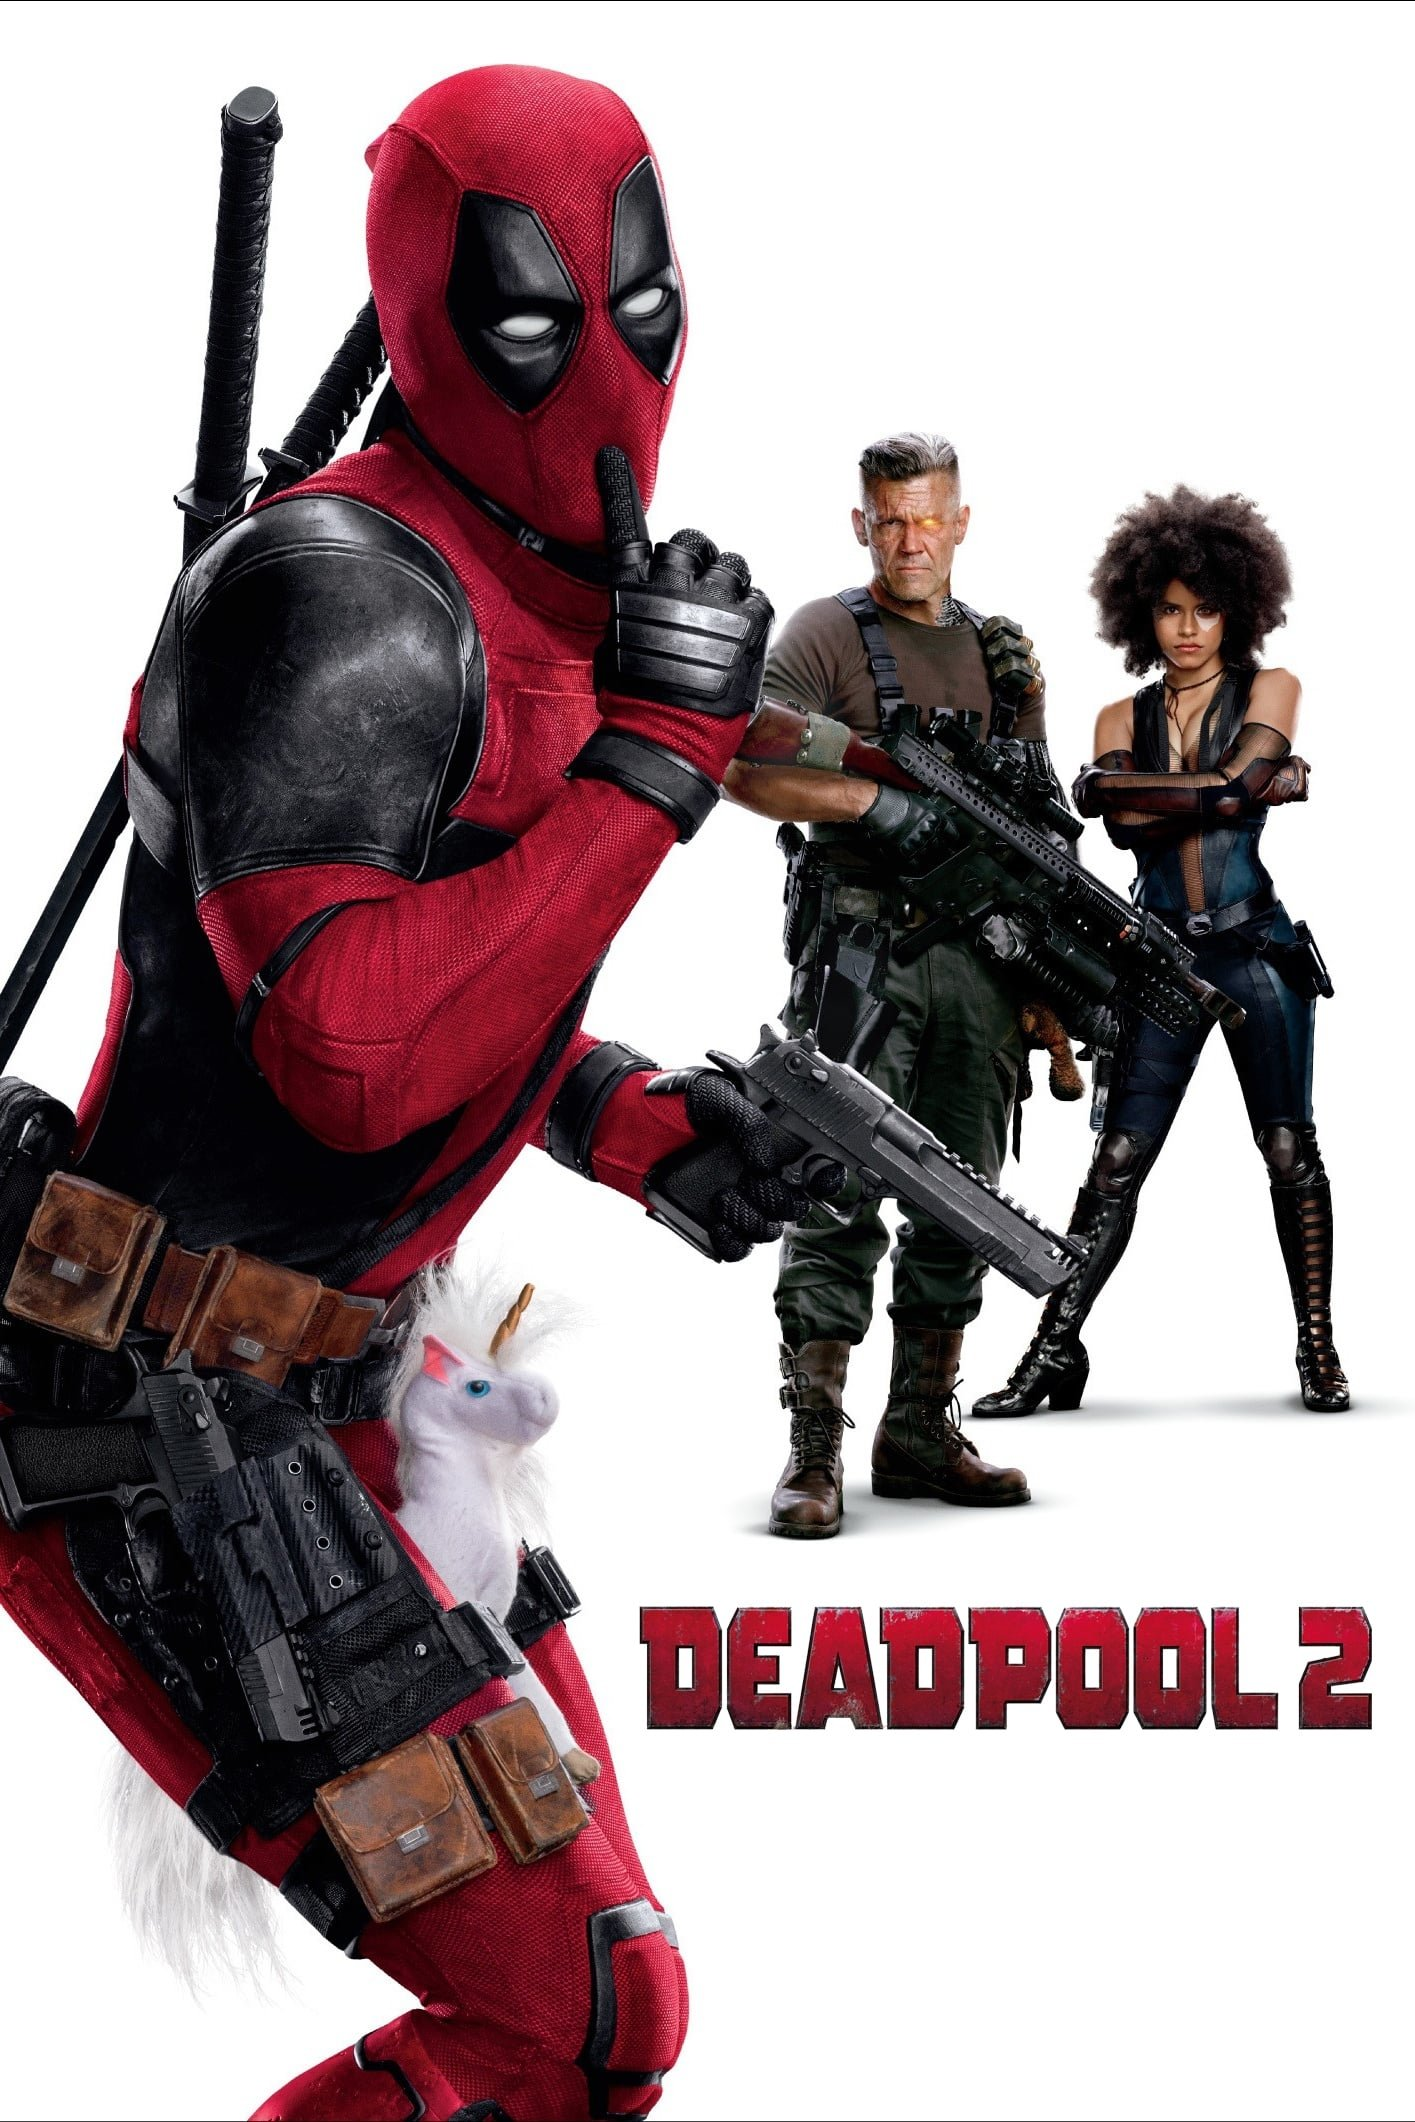 Deadpool 2 Movie Poster Id 189378 Image Abyss